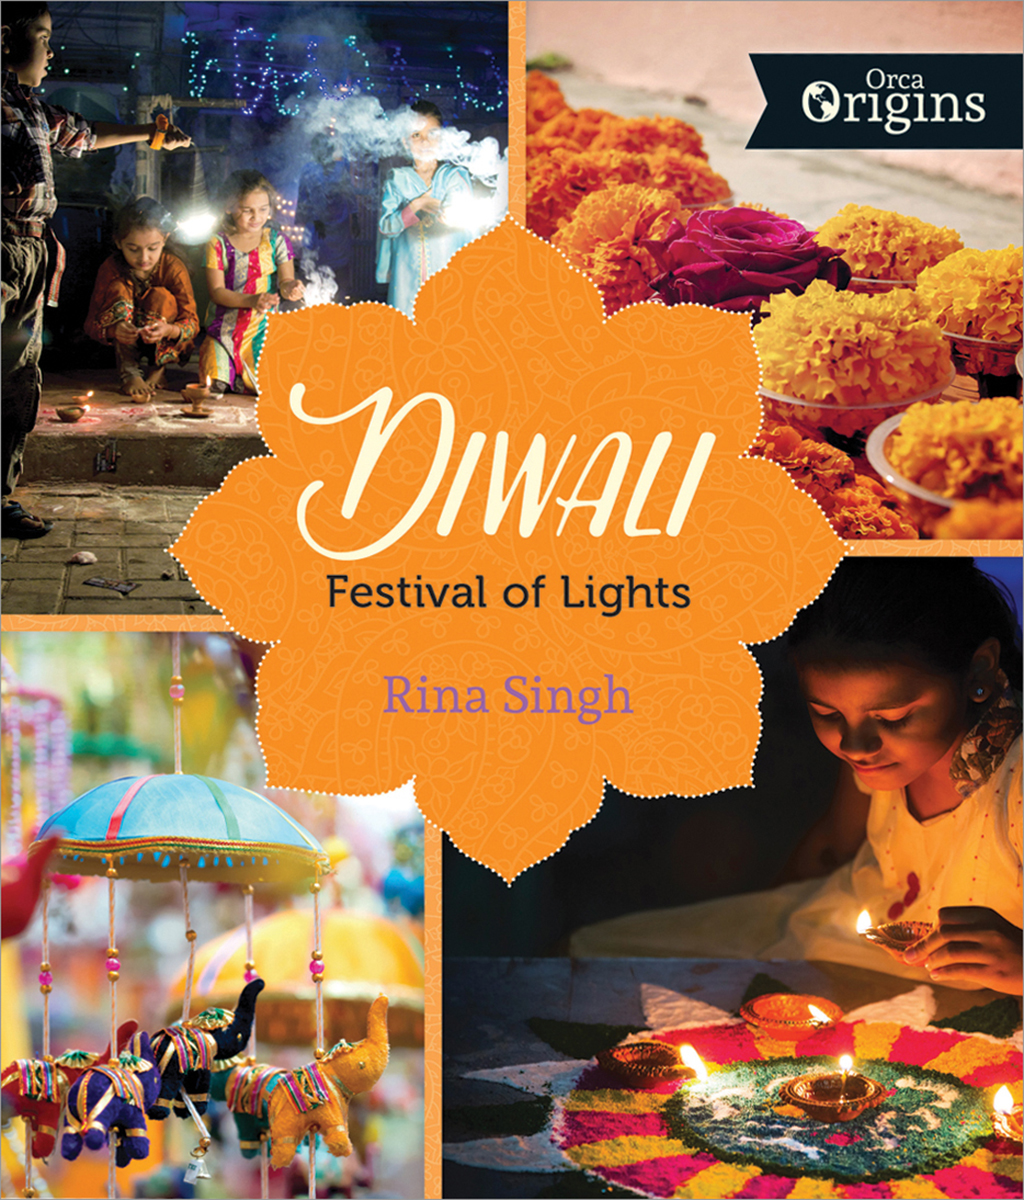 Diwali: Festival of Lights